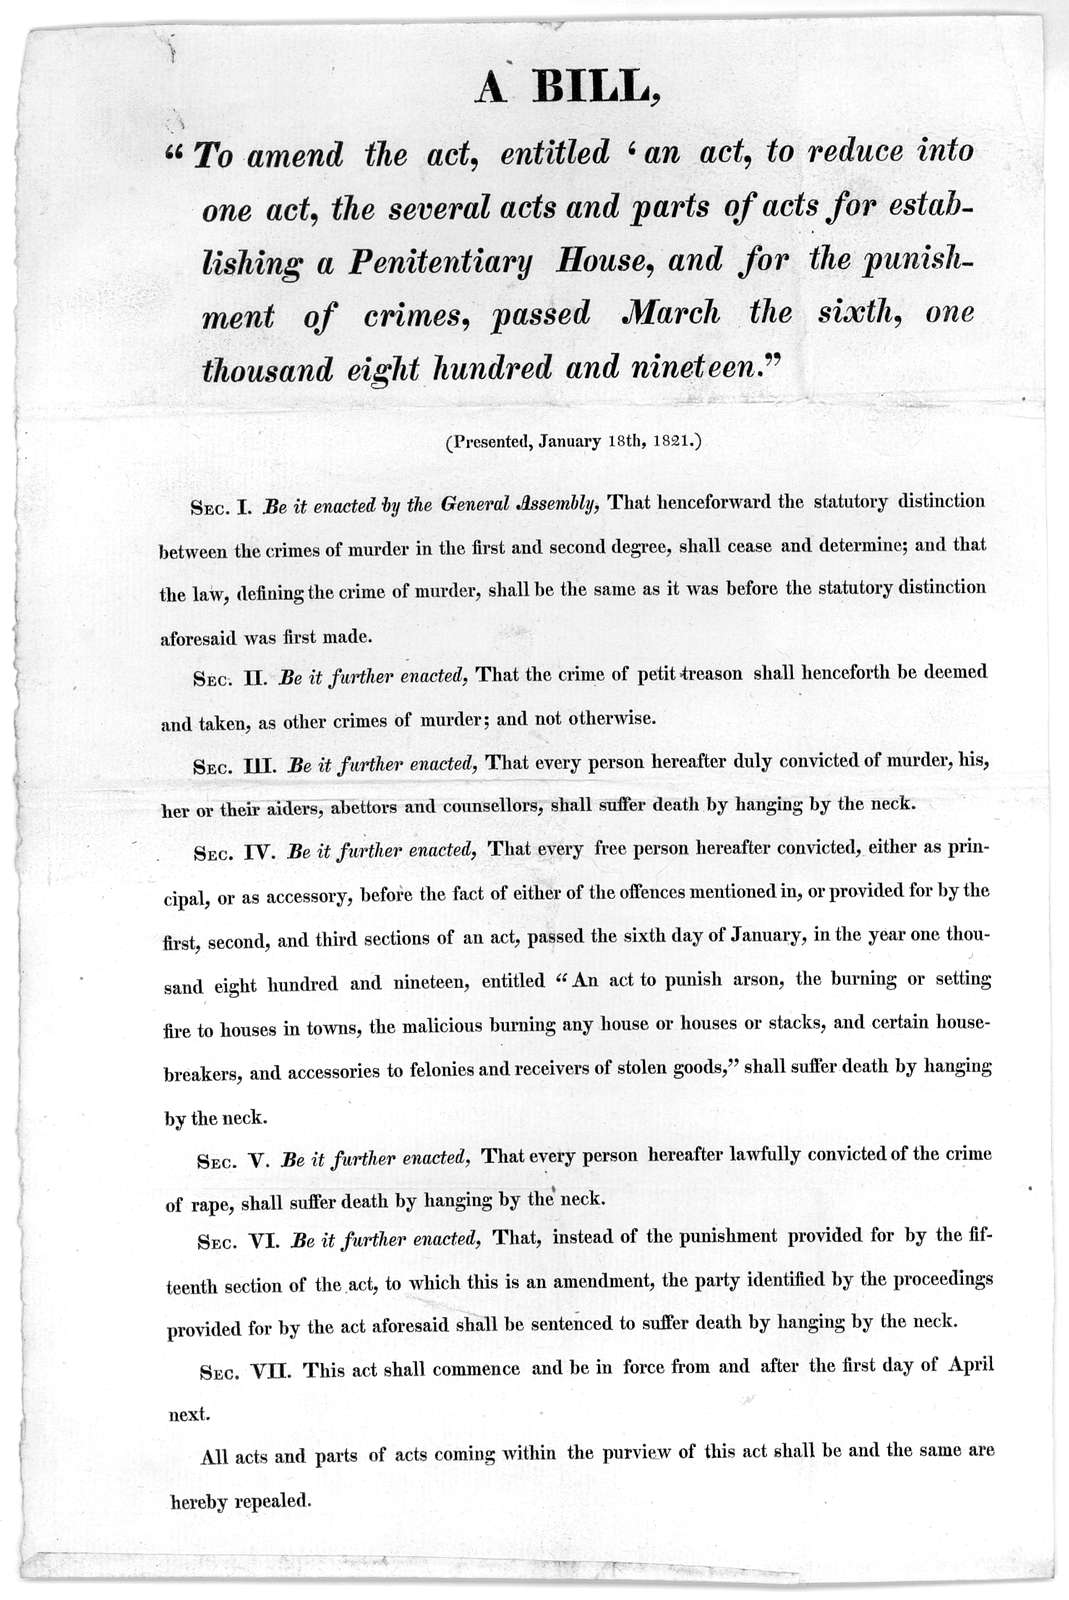 """A bill """"To amend the act, entitled, 'An act, to reduce into one act, the several acts and parts of acts for establishing a penitentiary house, and for the punishment of crimes, passed March the sixth, one thousand eight hundred and nineteen."""" (P"""